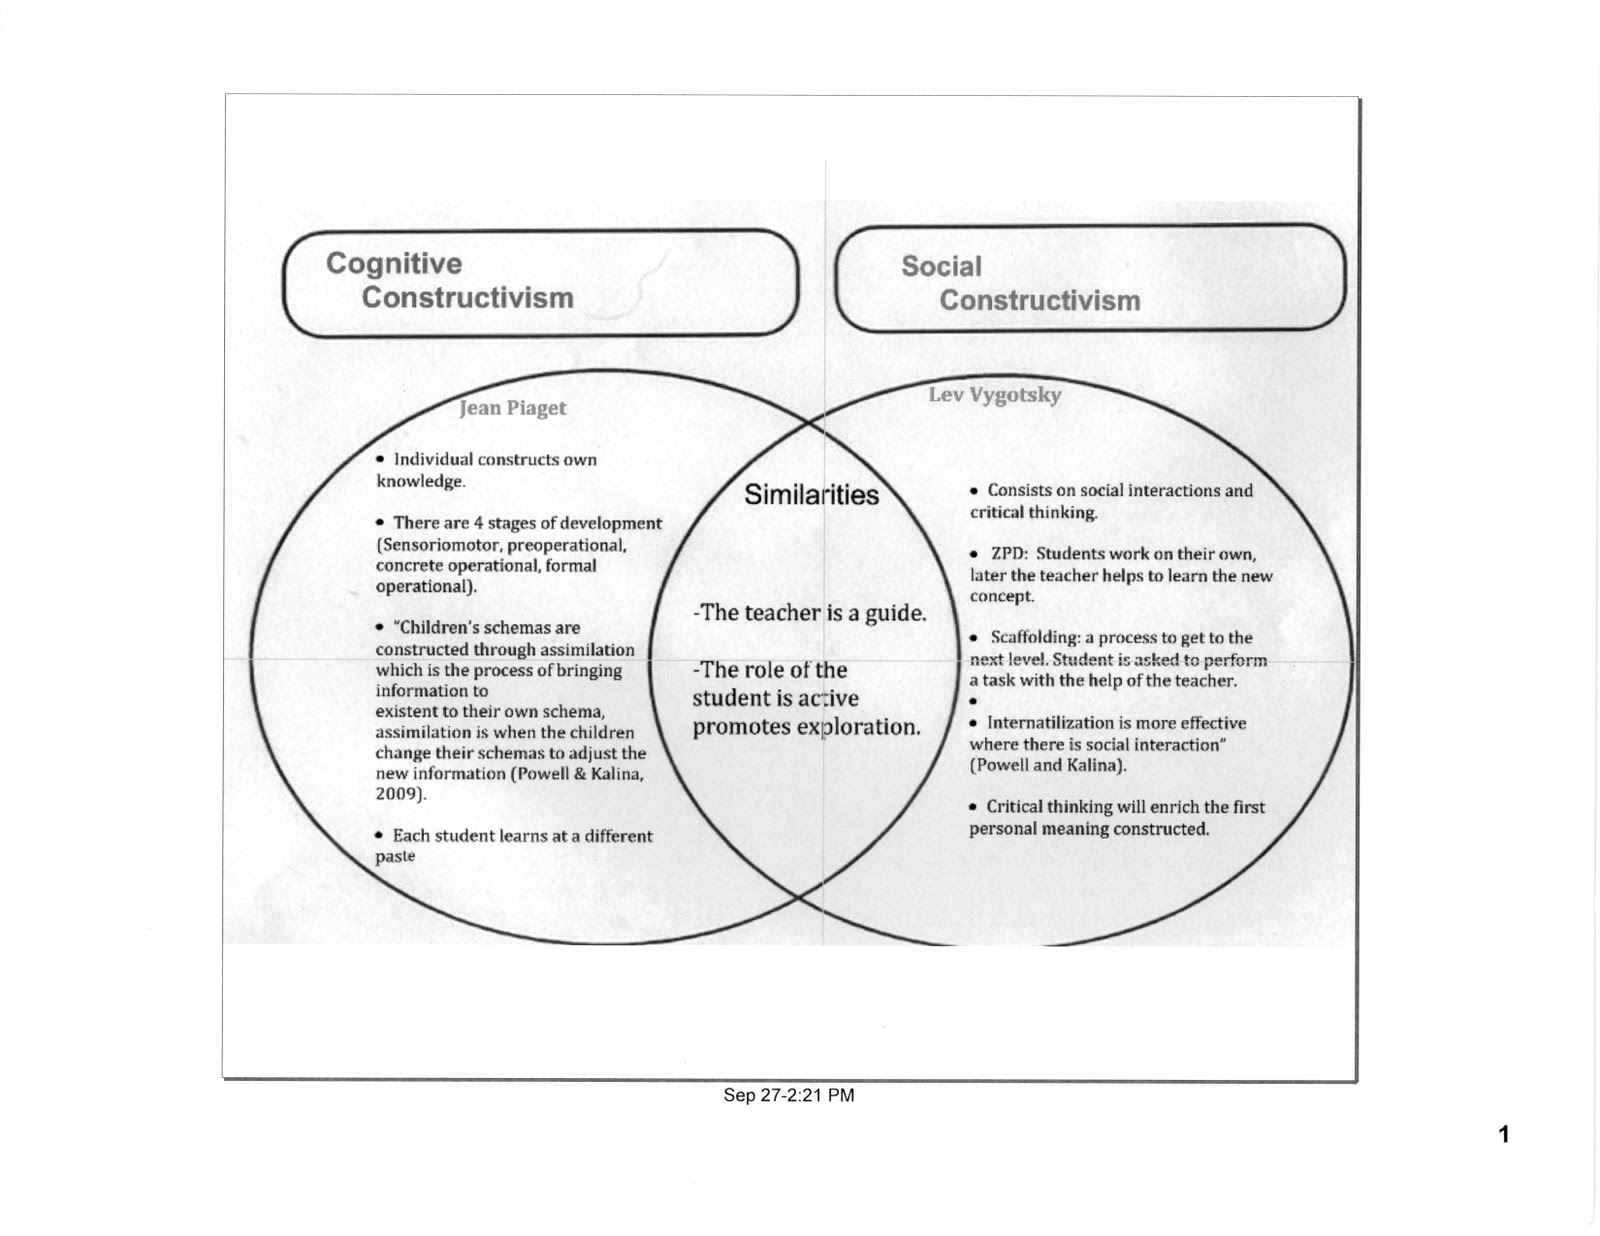 main differences between piaget and vygotsky Vygotsky's theories stress the fundamental role of social interaction in the development of cognition (similar to piaget) community plays a central role in the process of making meaning unlike piaget's notion that children's' development must necessarily precede their learning, vygotsky argued that social learning tends to precede development.